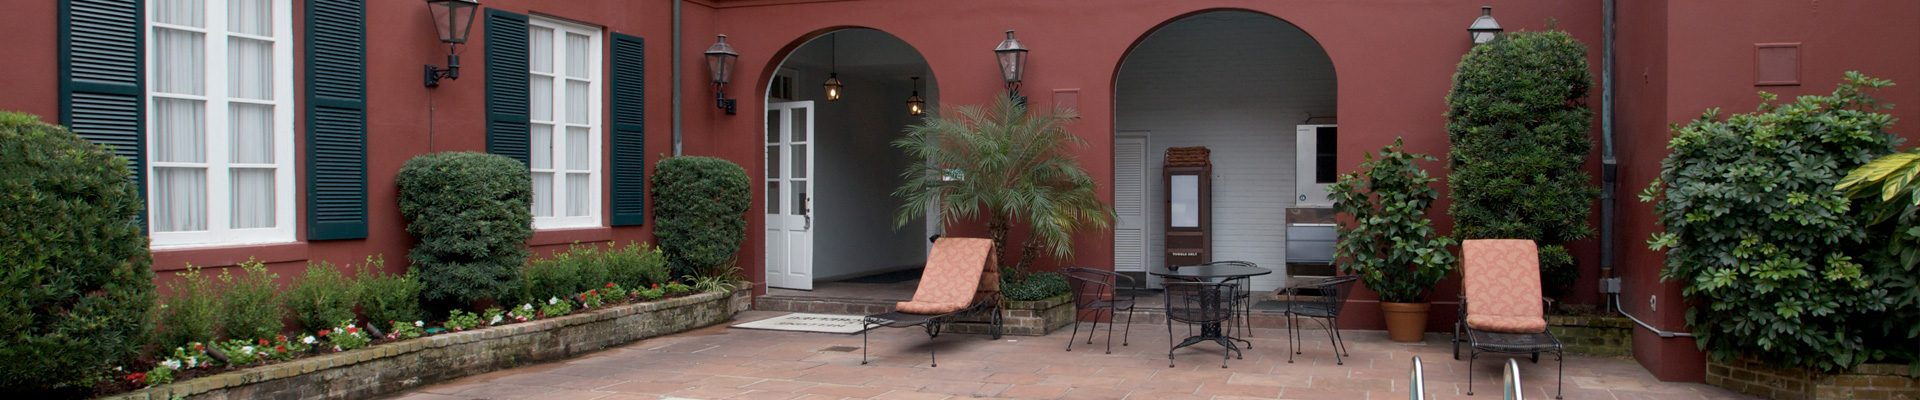 The French Quarter Collection of Hotels